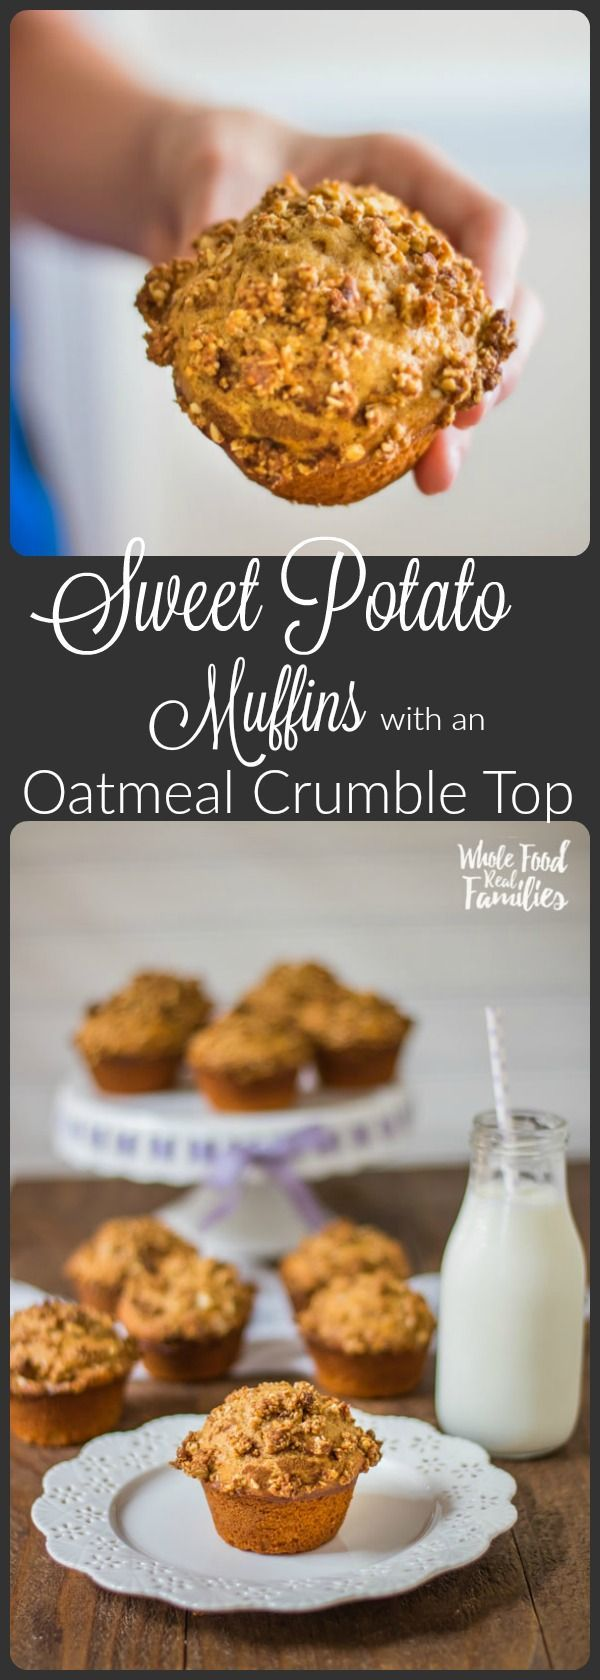 We bake these Sweet Potato Muffins with an Oatmeal Crumble Top anytime there is an extra sweet potato after dinner. They taste AMAZING! My kids love them for breakfast and in their lunchboxes! Make your sweet potatoes in the pressure cooker if you want to save some time!  @wholefoodrealfa